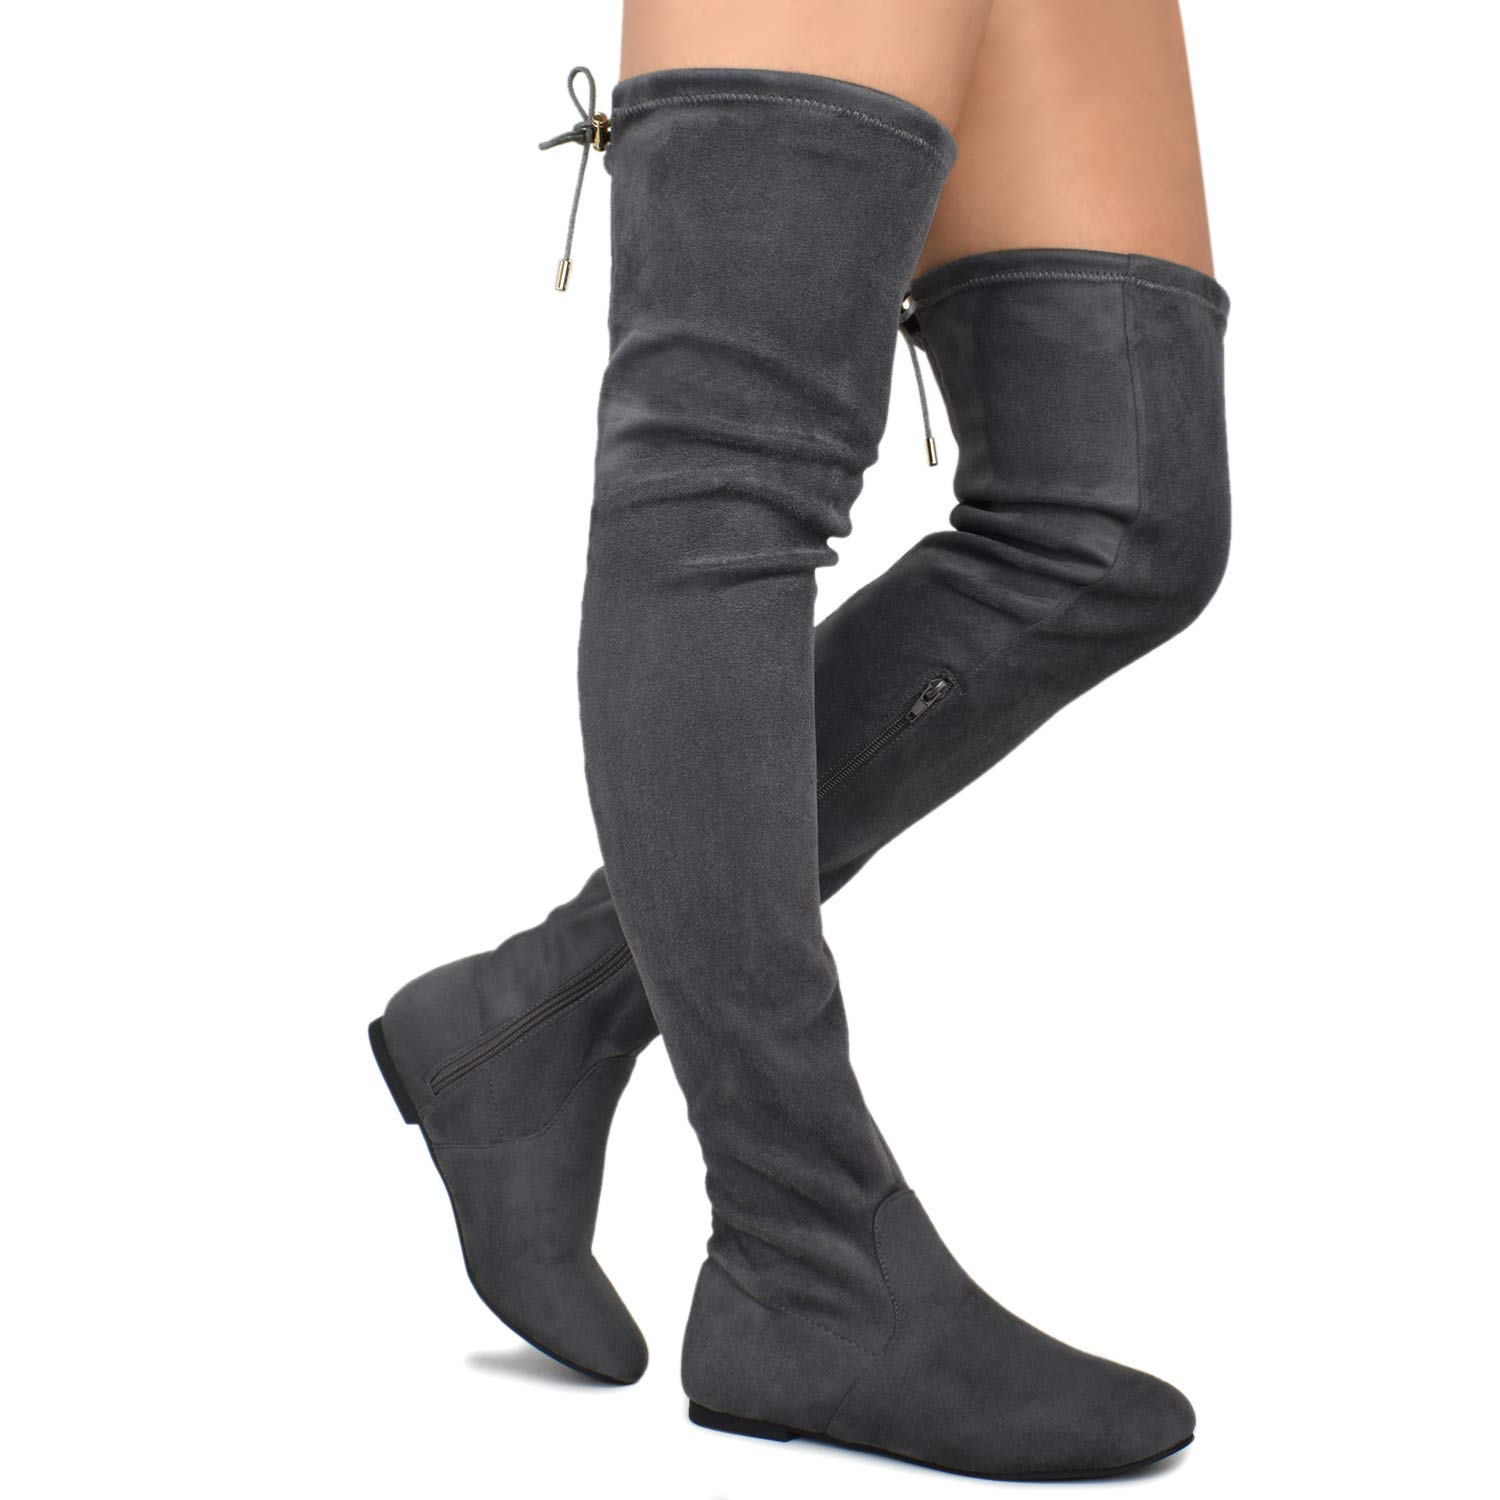 Premier Standard - Women's Fashion Comfy Vegan Suede Side Zipper Over Knee High Boots